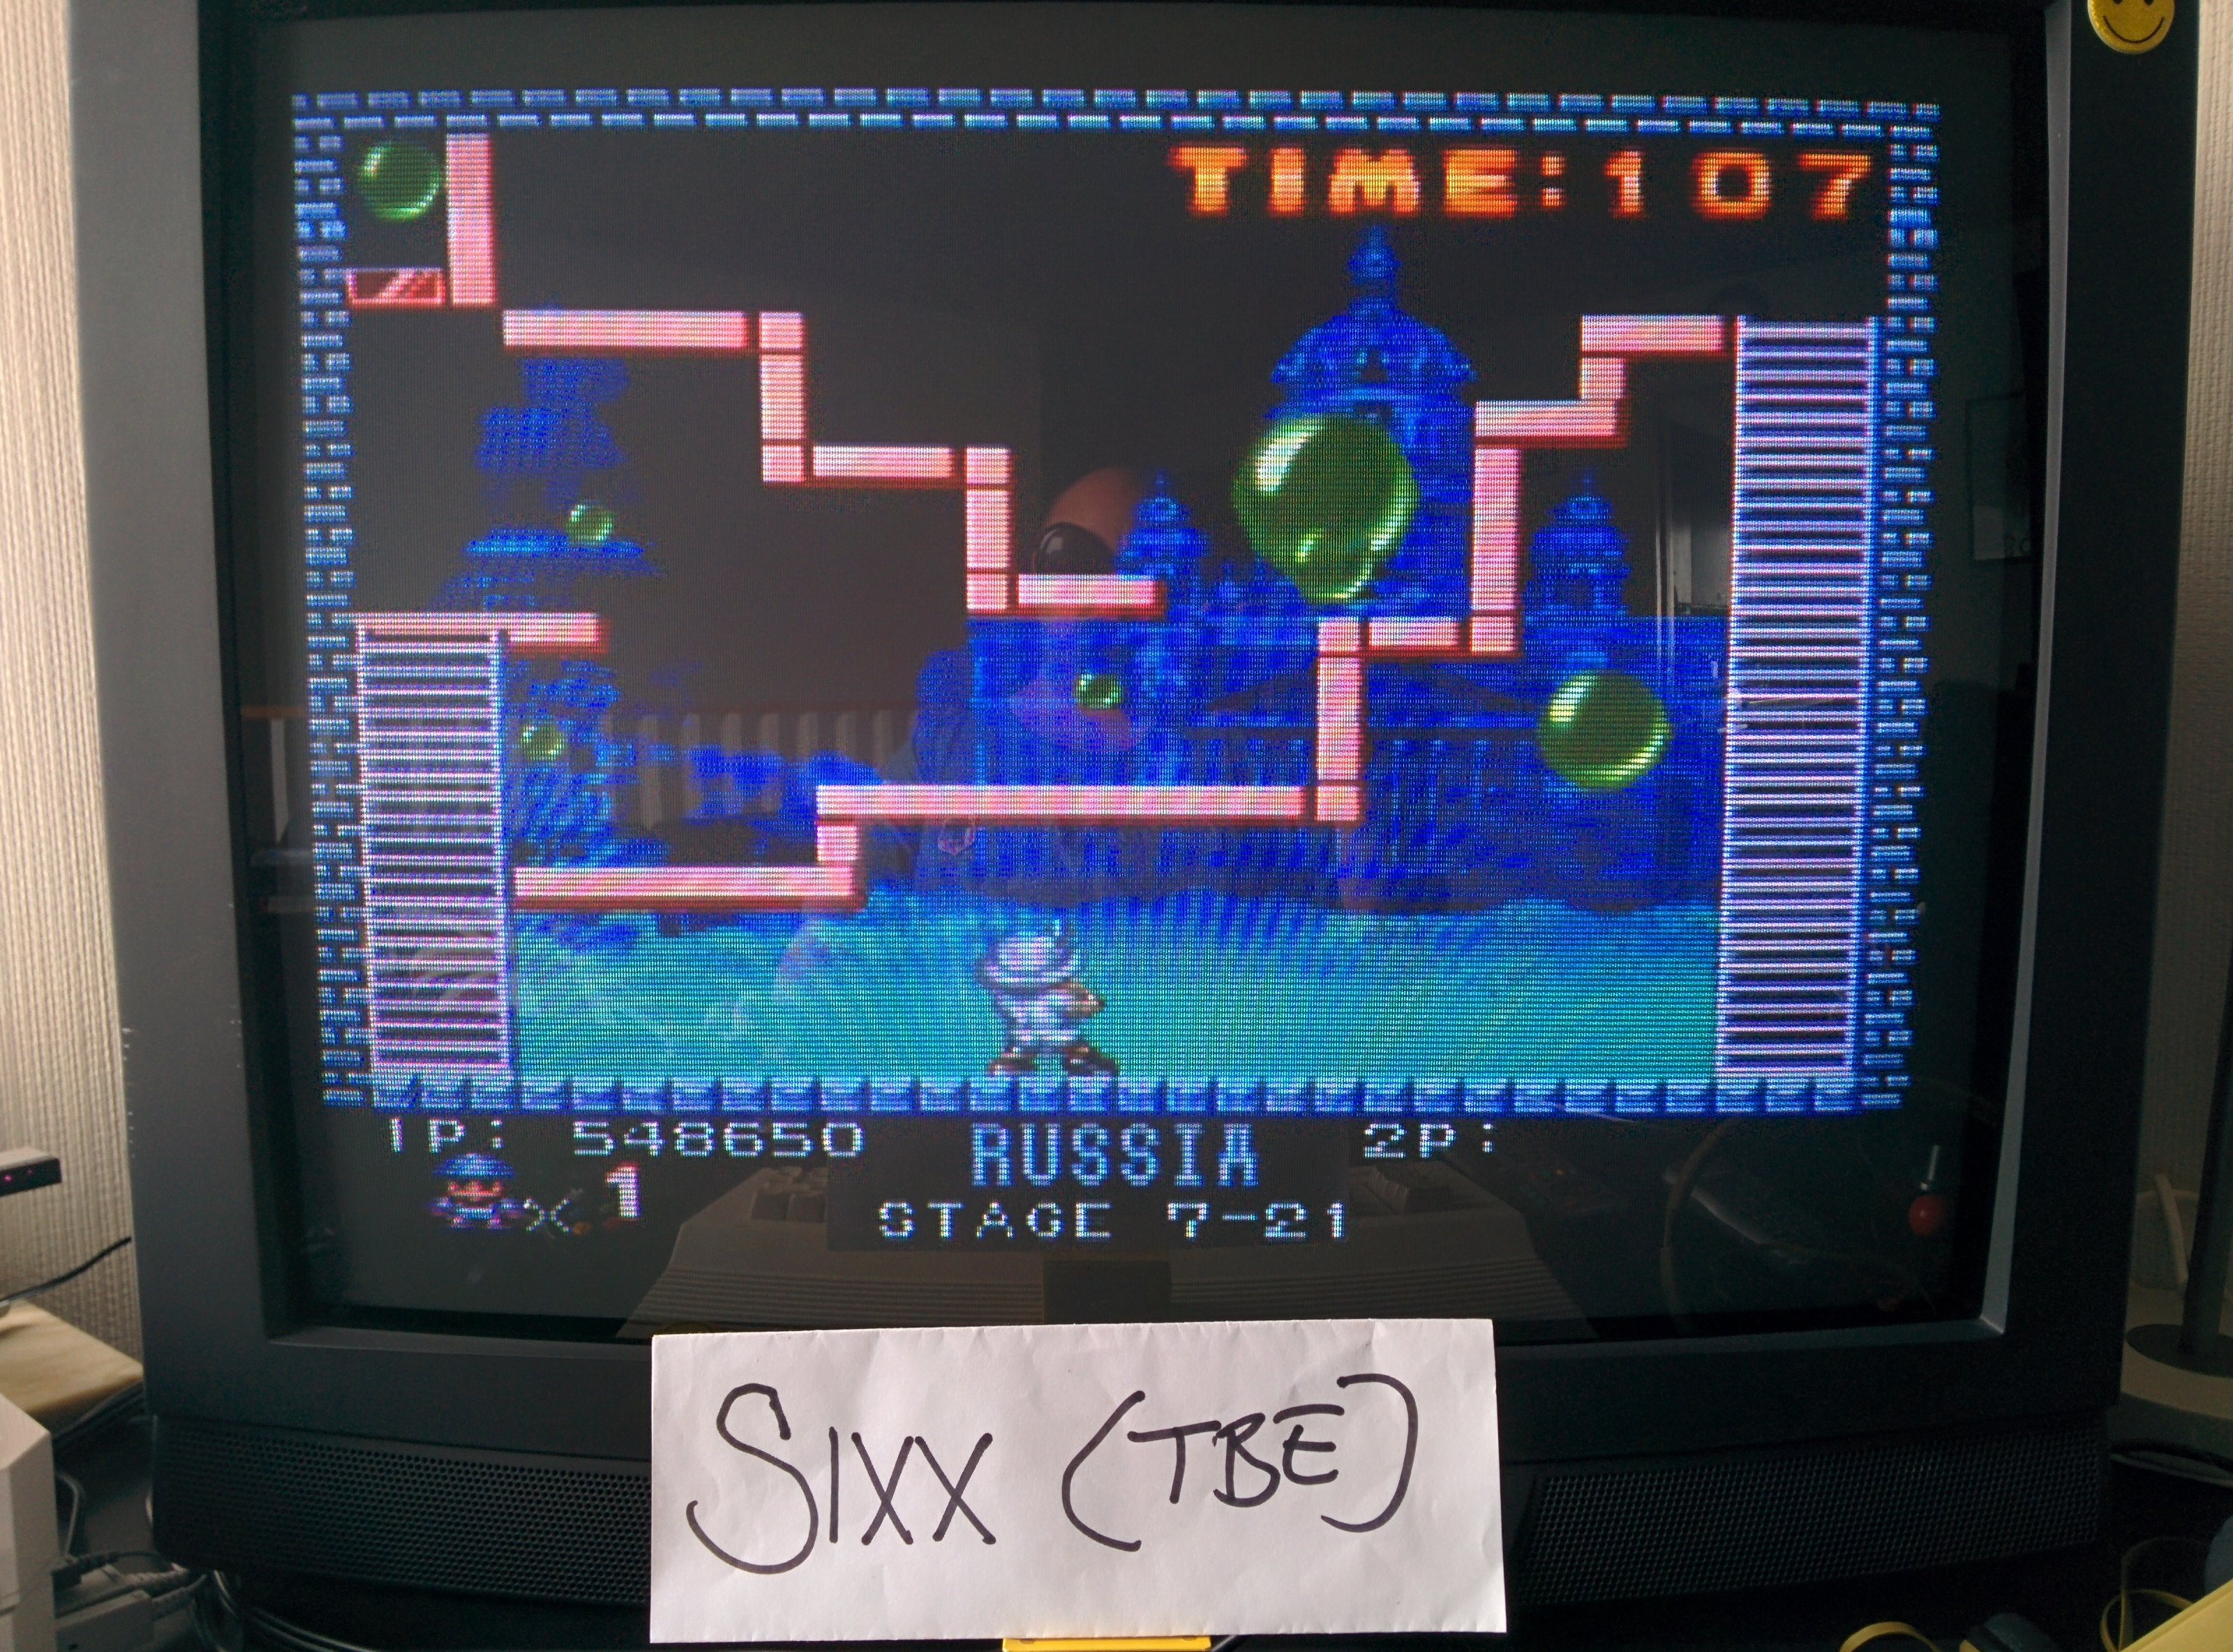 Sixx: Buster Bros. (TurboGrafx-16/PC Engine Emulated) 548,650 points on 2014-06-21 06:30:47